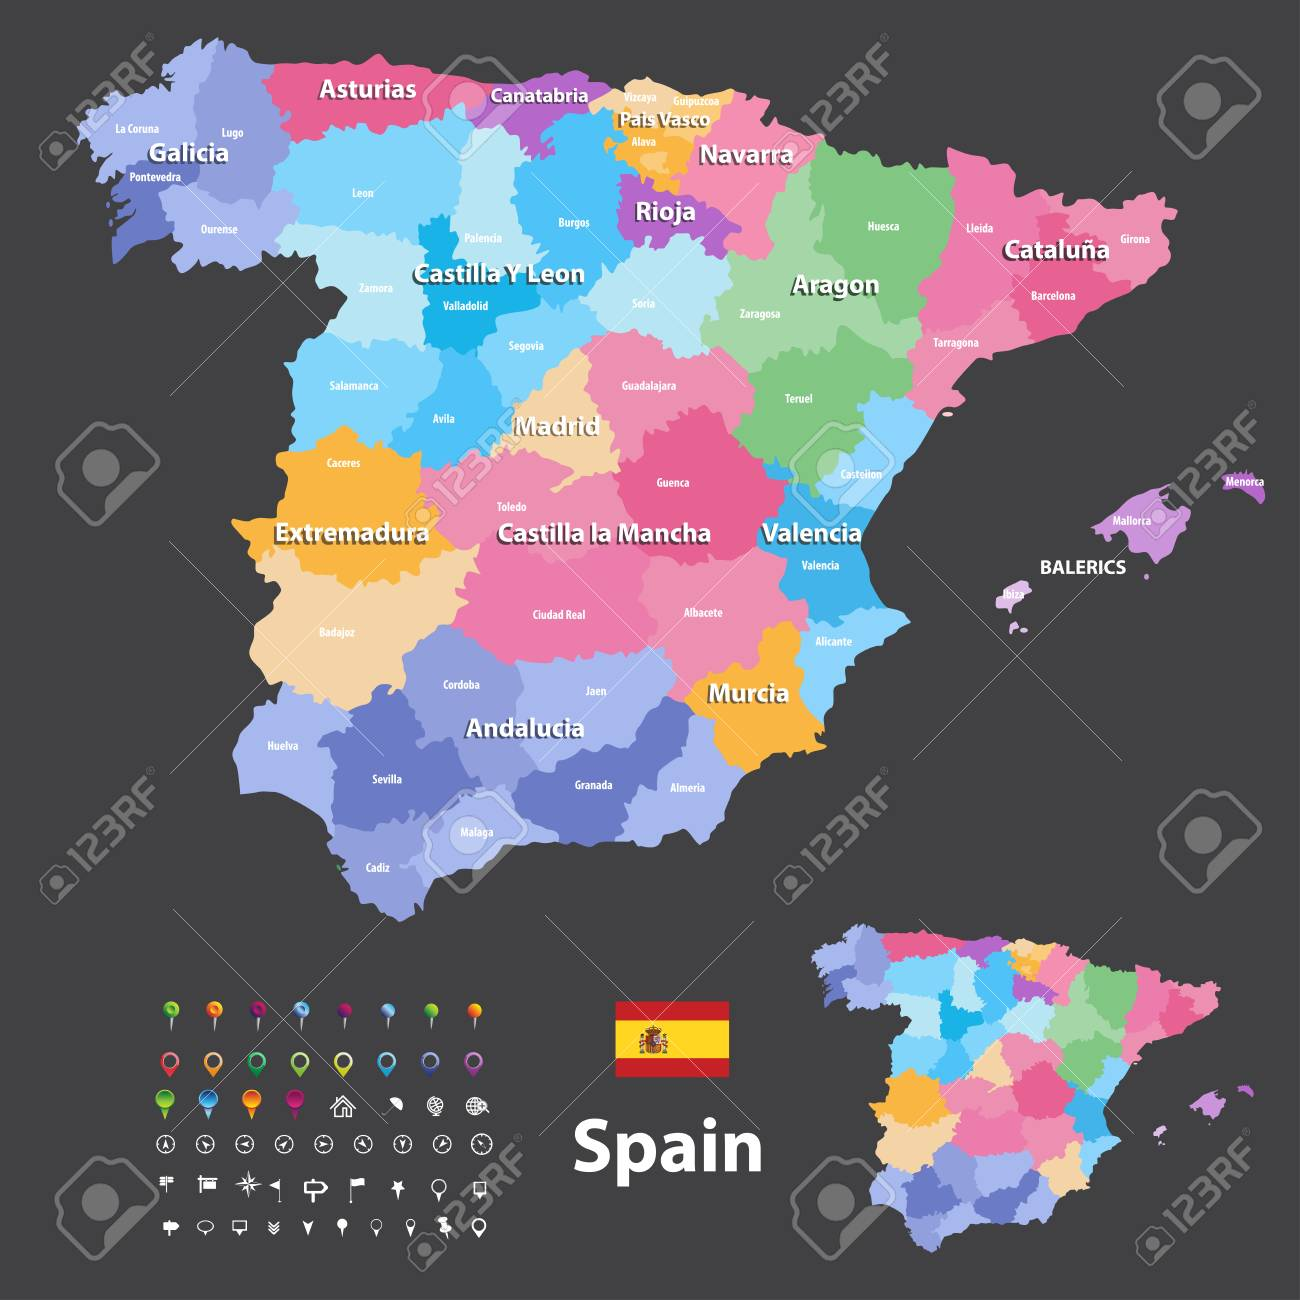 Spain Map Of Provinces.Autonomous Communities And Provinces Vector Map Of Spain Navigation